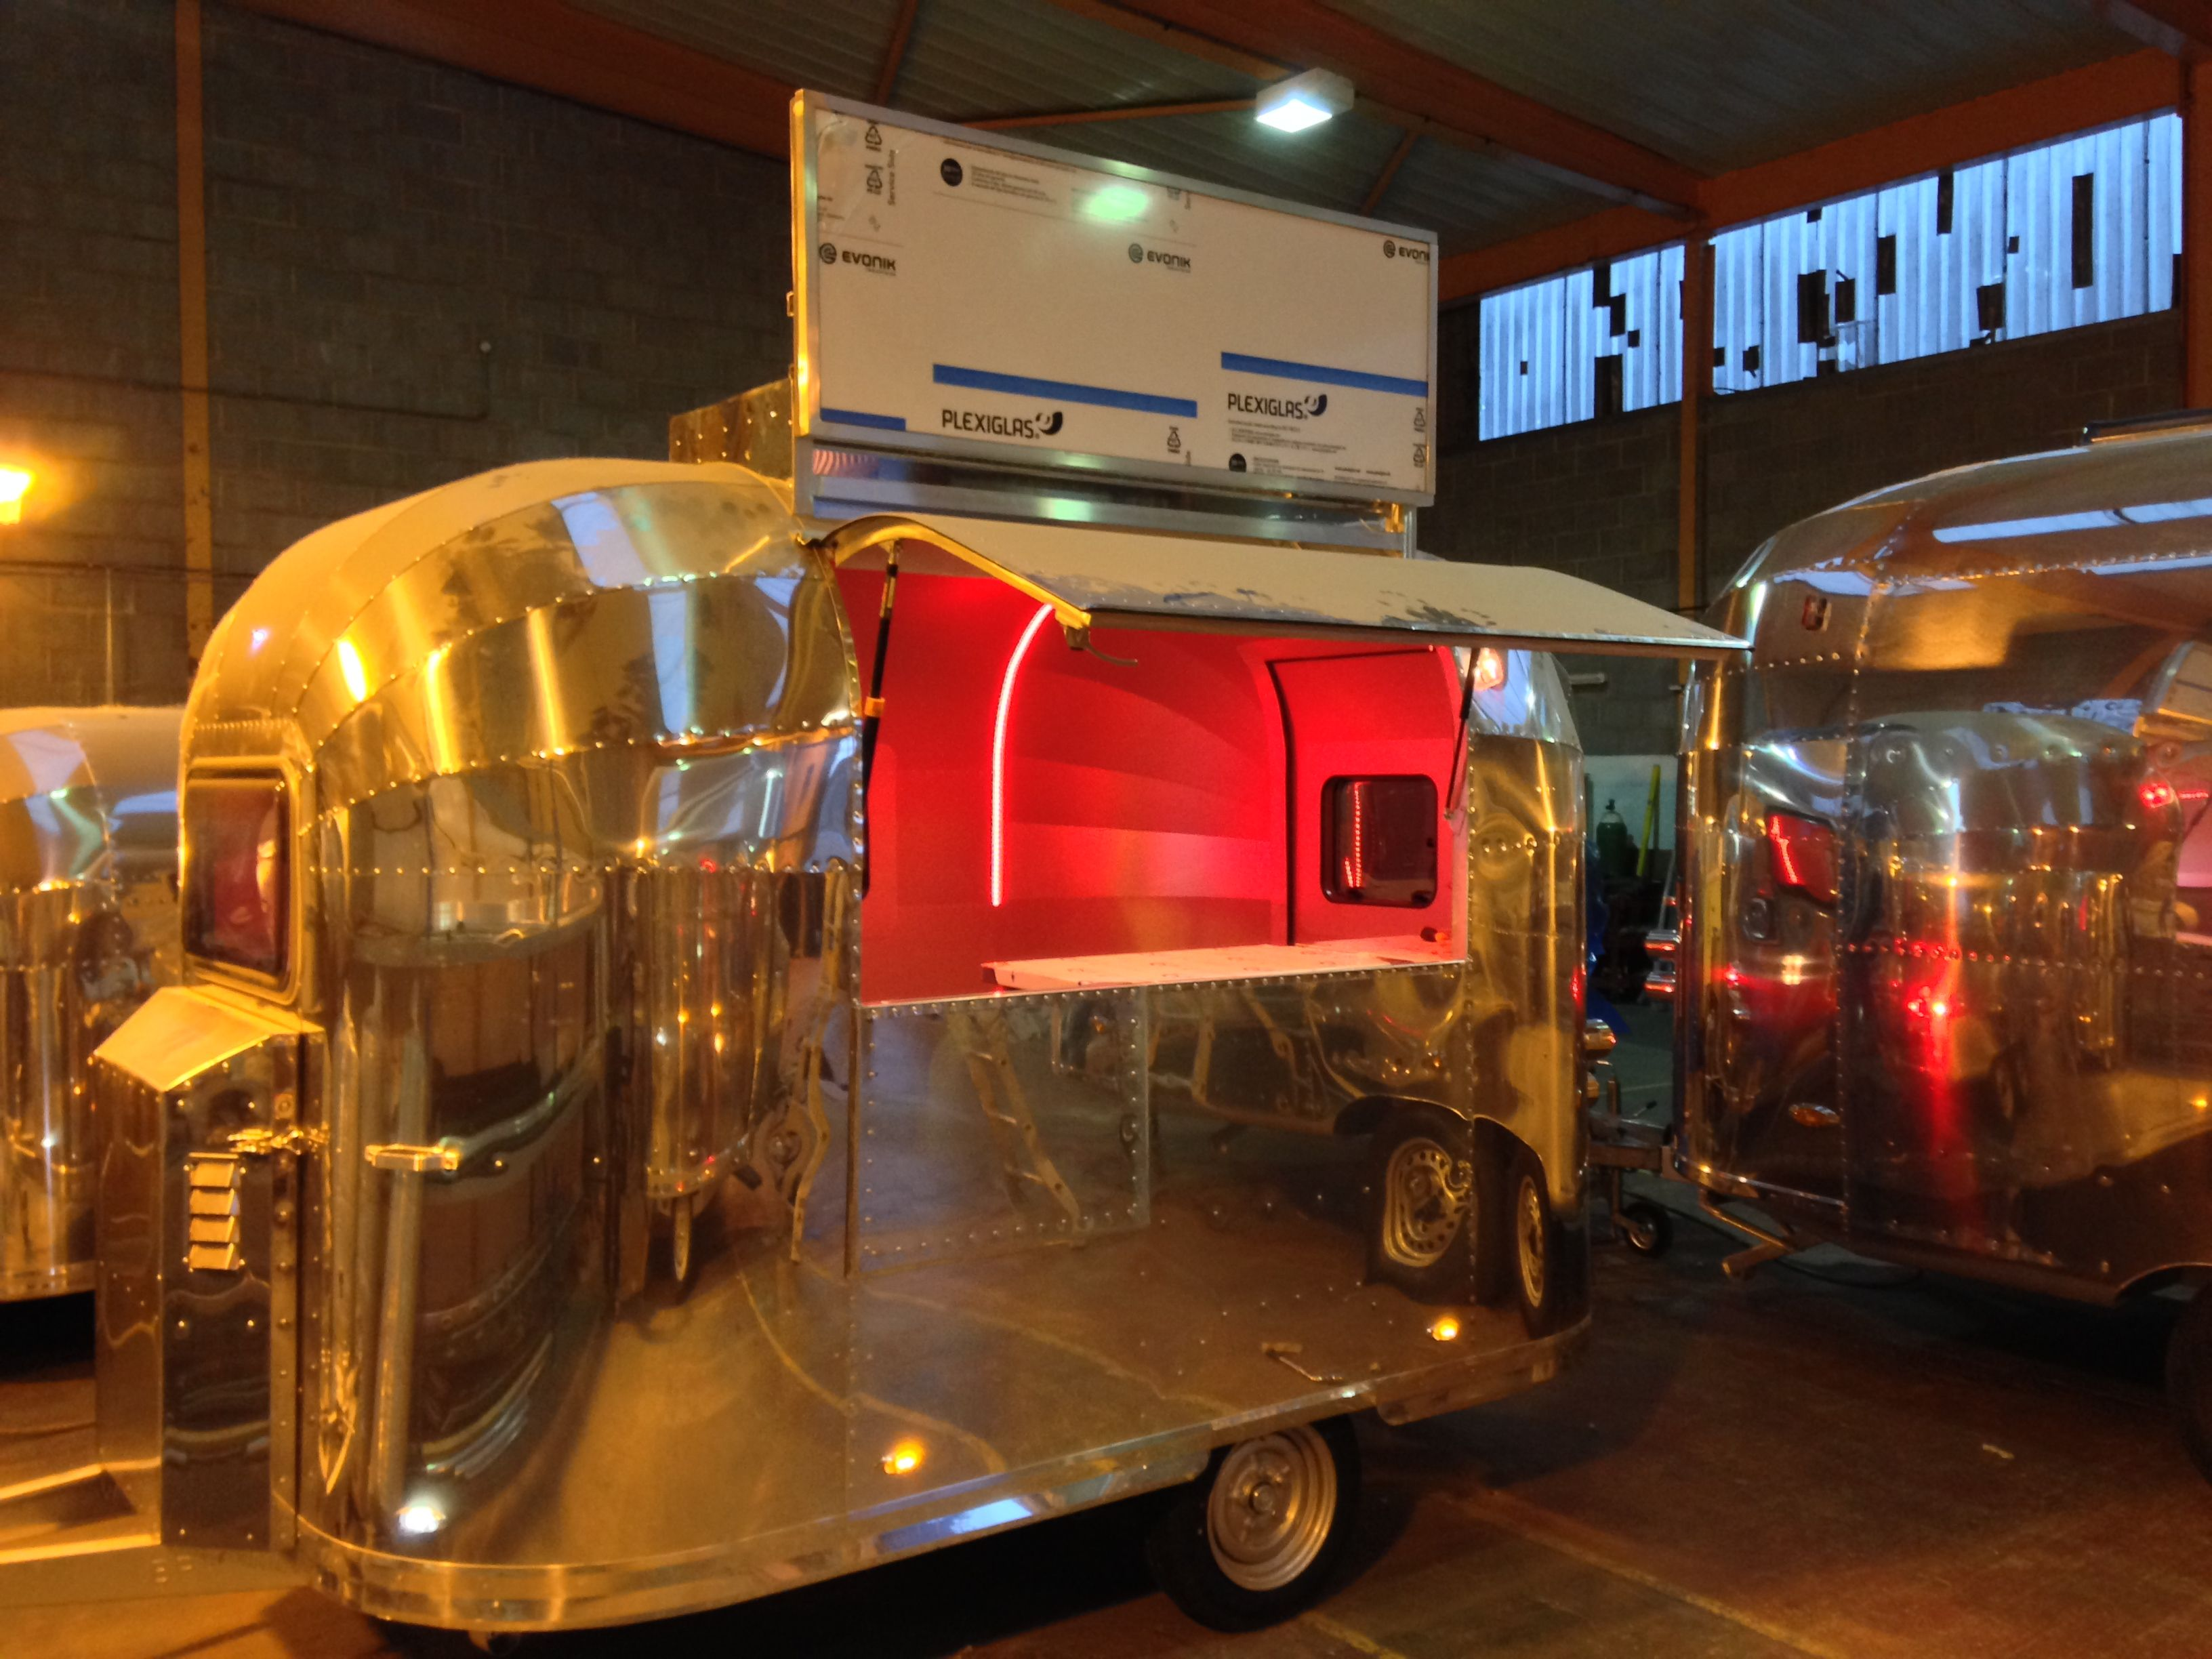 Brand New Little Retro Kitchen 2014 Built By Www Retro Rocket Hand Built In The U K Vintage Campers Trailers Catering Trailer Food Trailer